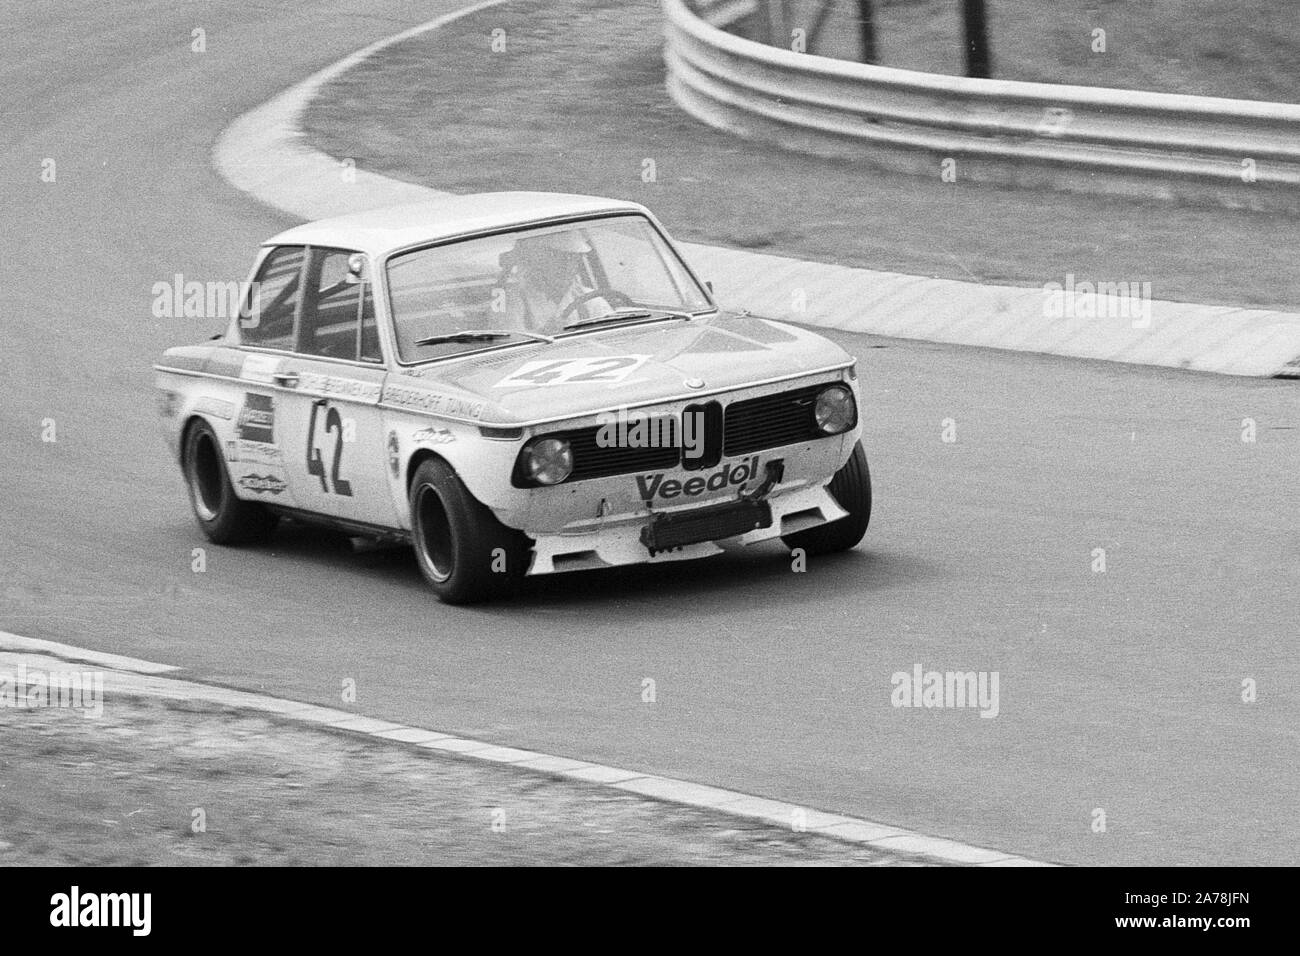 bmw-2002-during-a-1970s-touring-car-race-at-the-nuerburgring-germany-2A78JFN.jpg